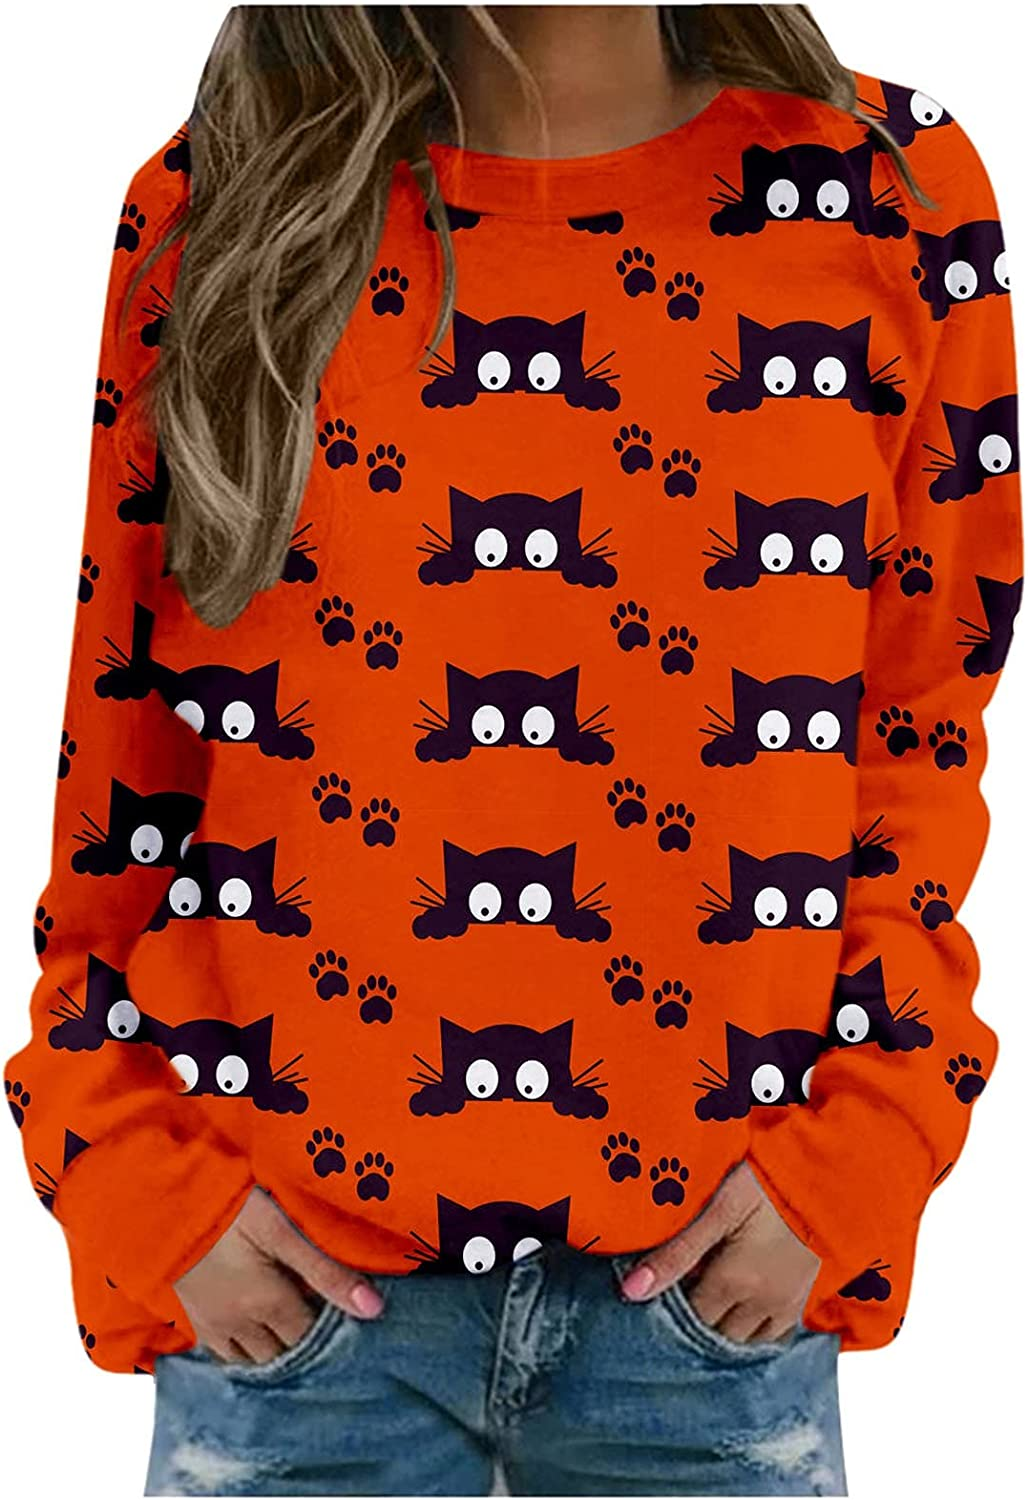 5665 Womens Halloween Houston Mall Long Sleeve Pullo Max 67% OFF Print Graphic Funny Tops